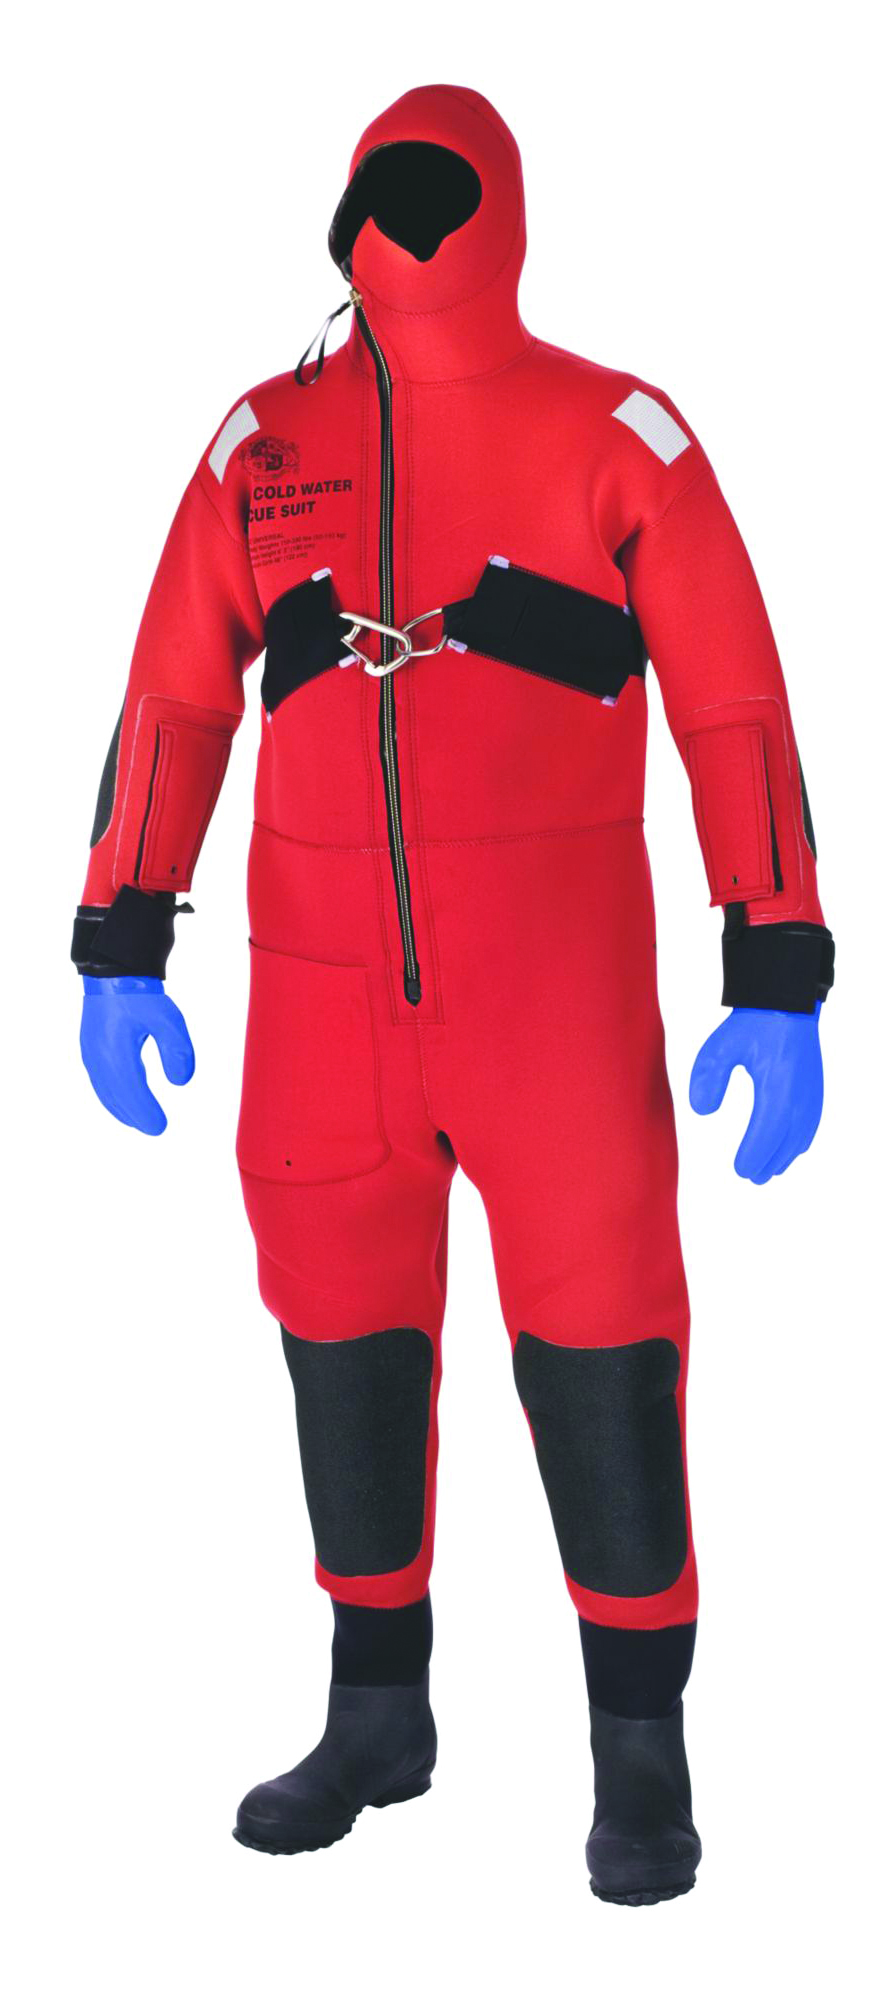 2000027421 - Ice Rescue Suits-Ice Rescue Suit-Size: Small, Up to 250 lbs. Max Height: 5 ft. 8 in. (173 cm)----UOM: 1/EA